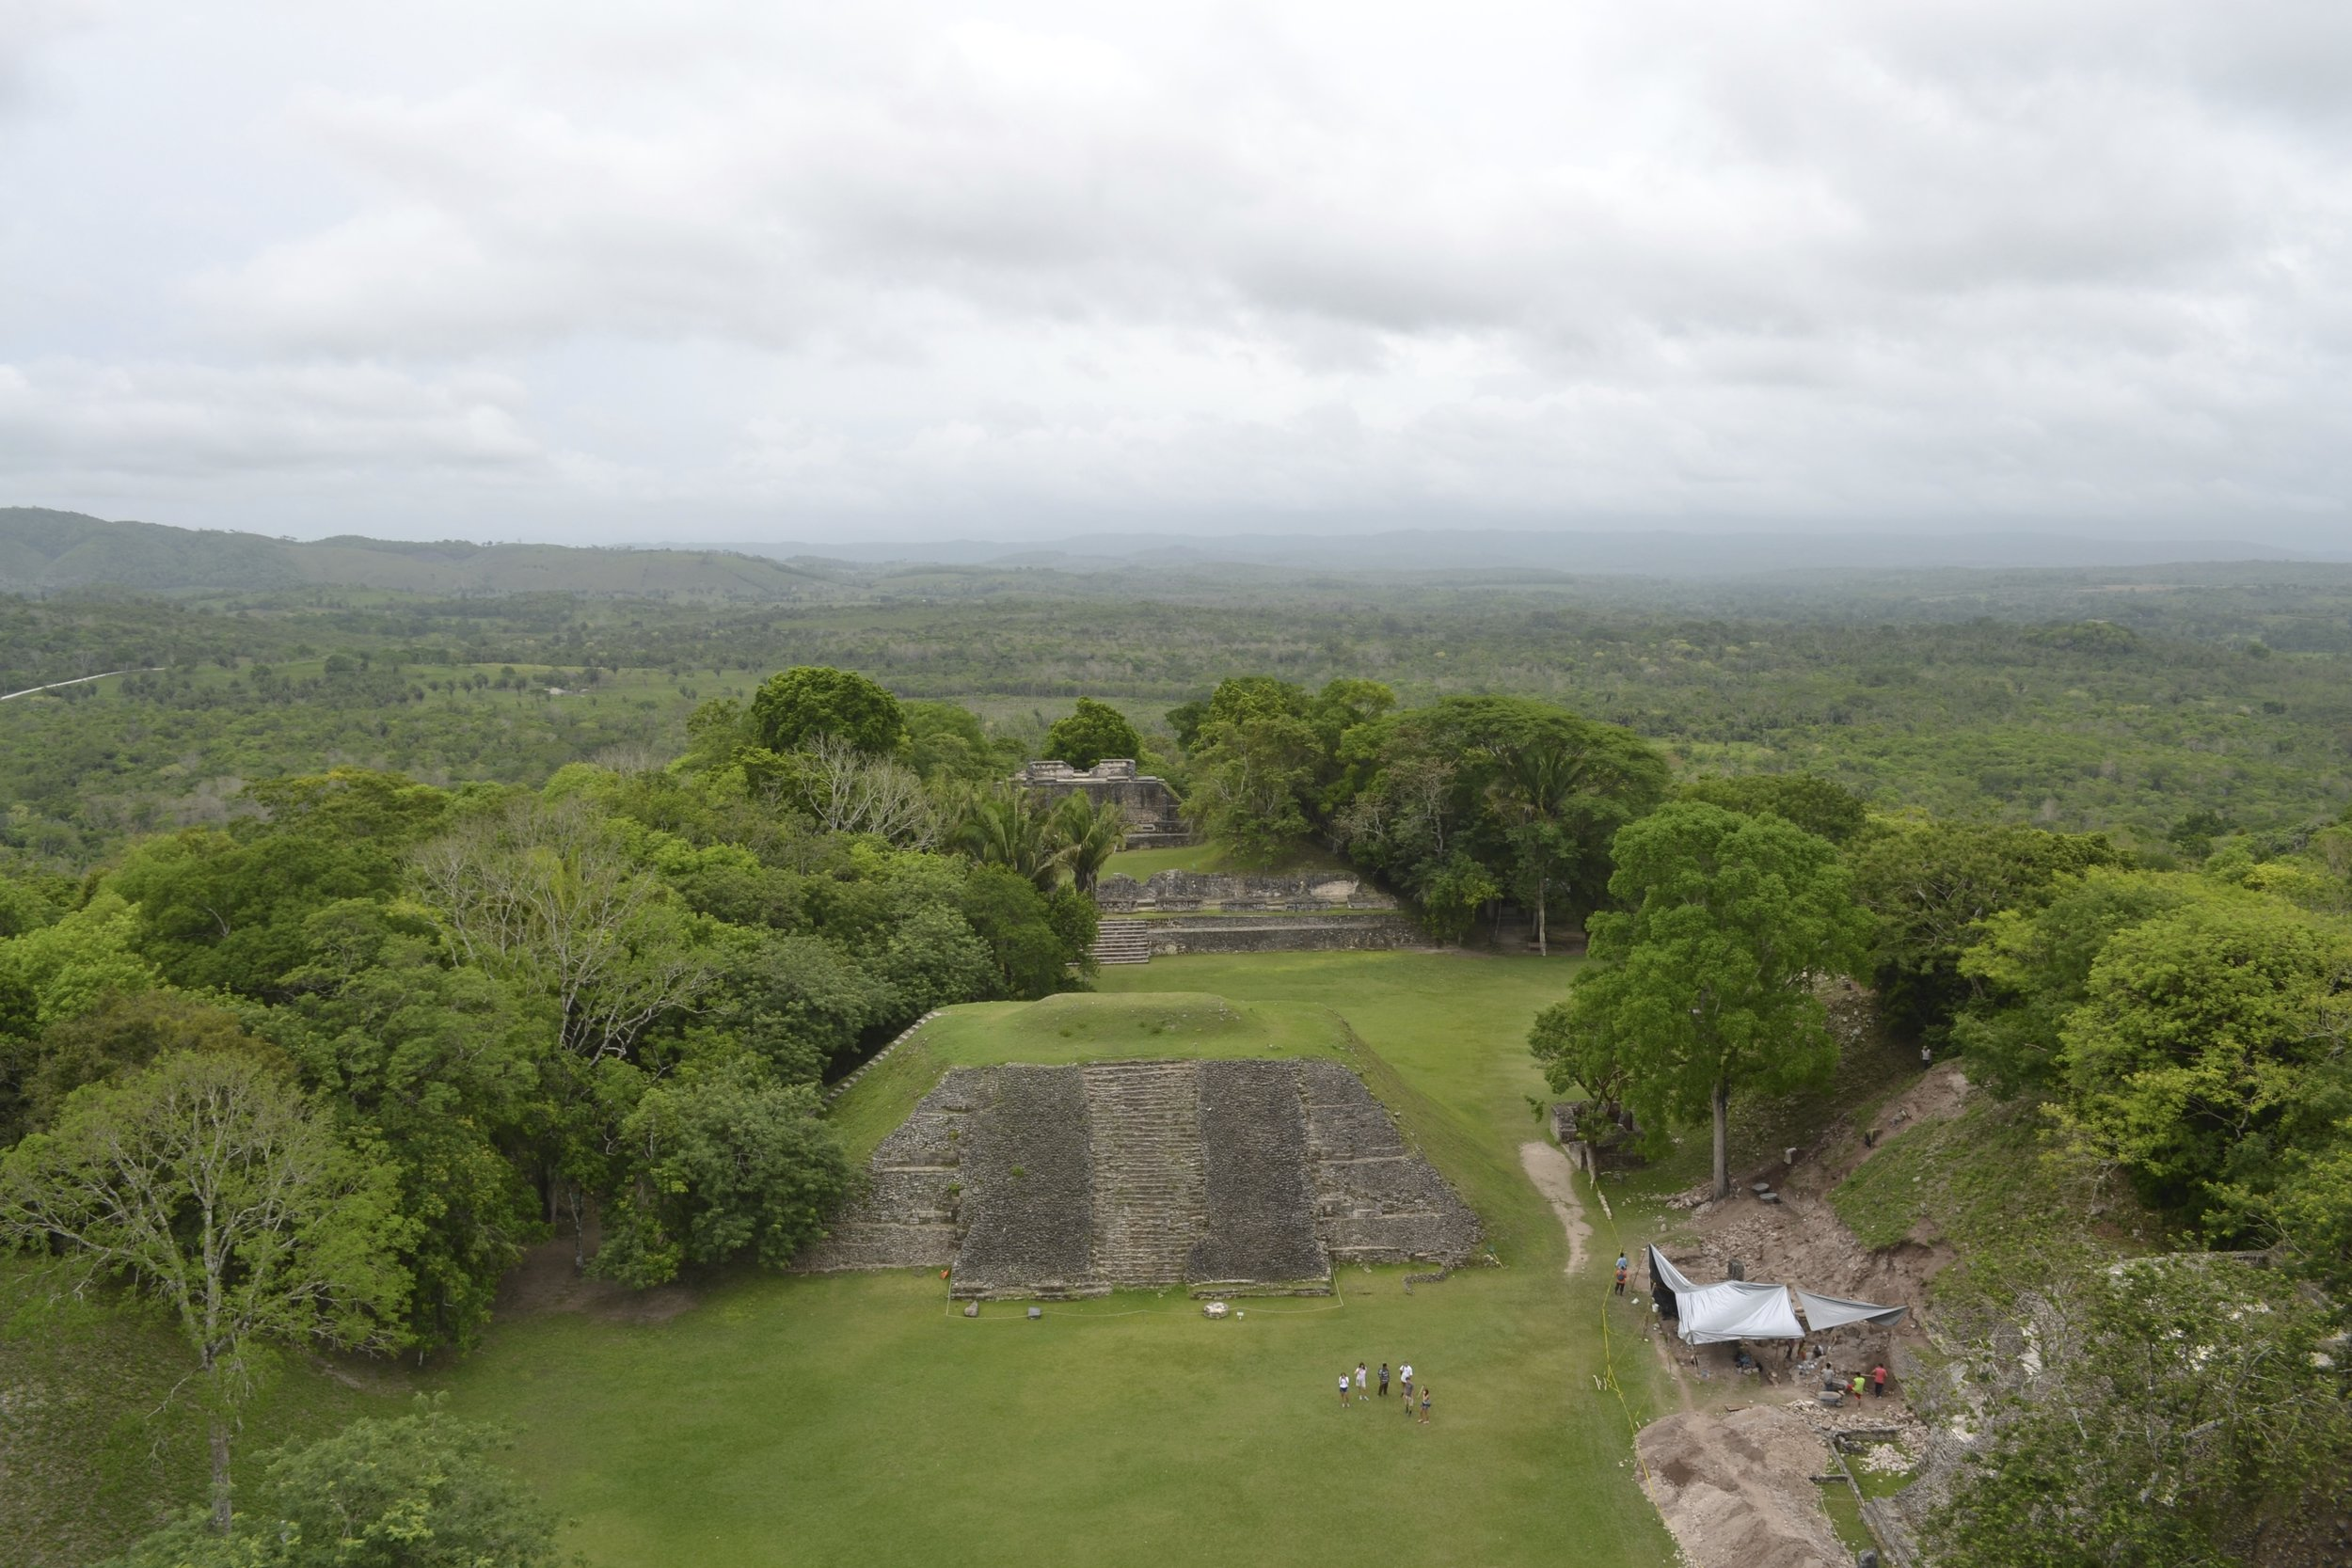 View of Xunantucinich in Belize